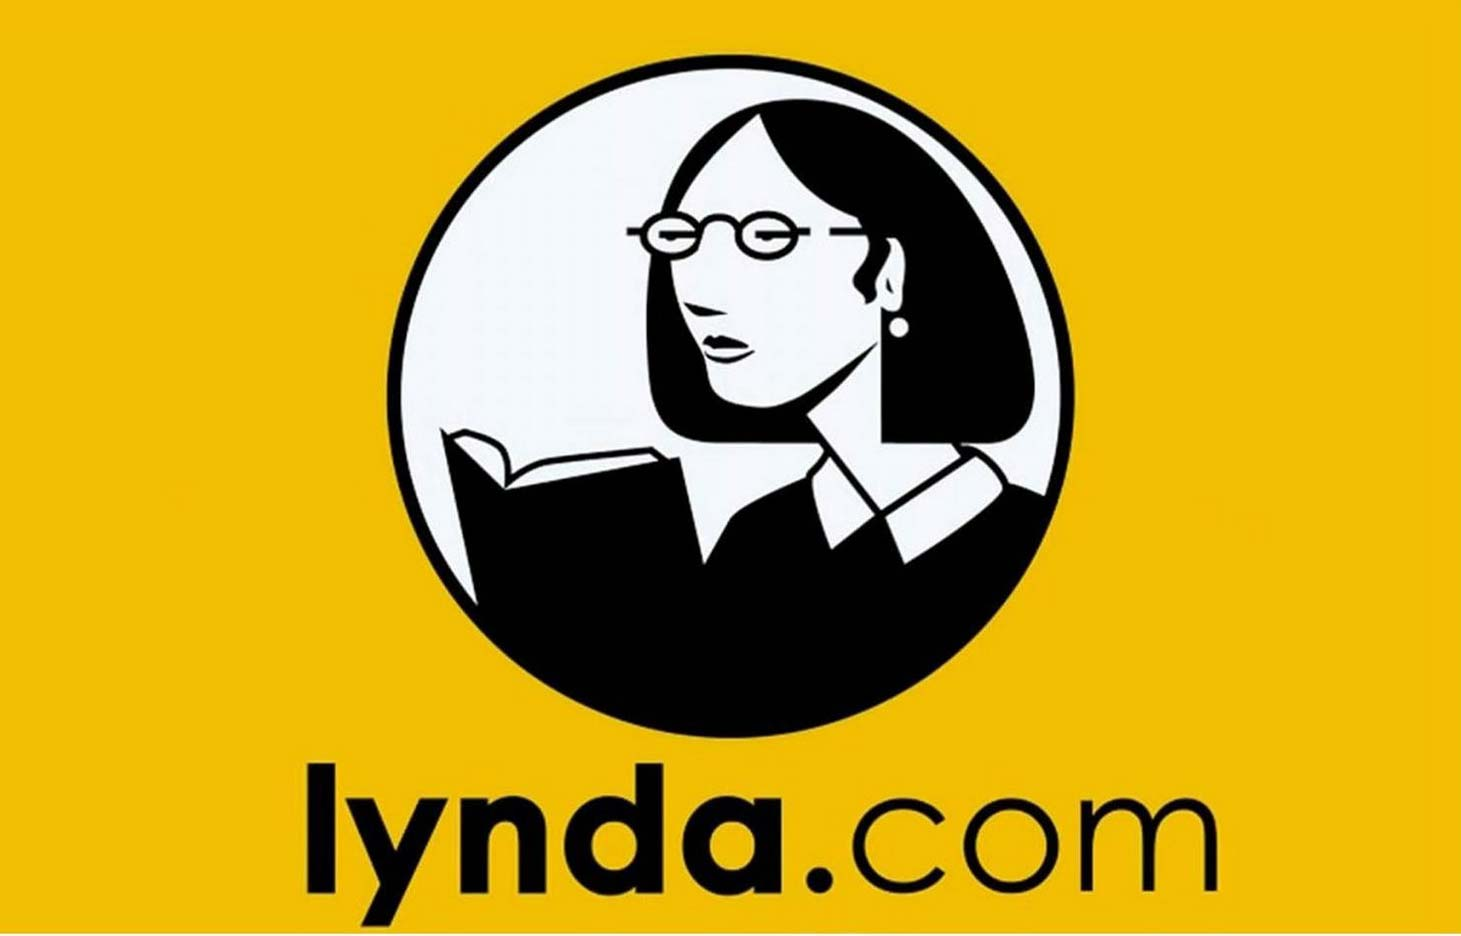 Lynda.com to Learn PPC Online